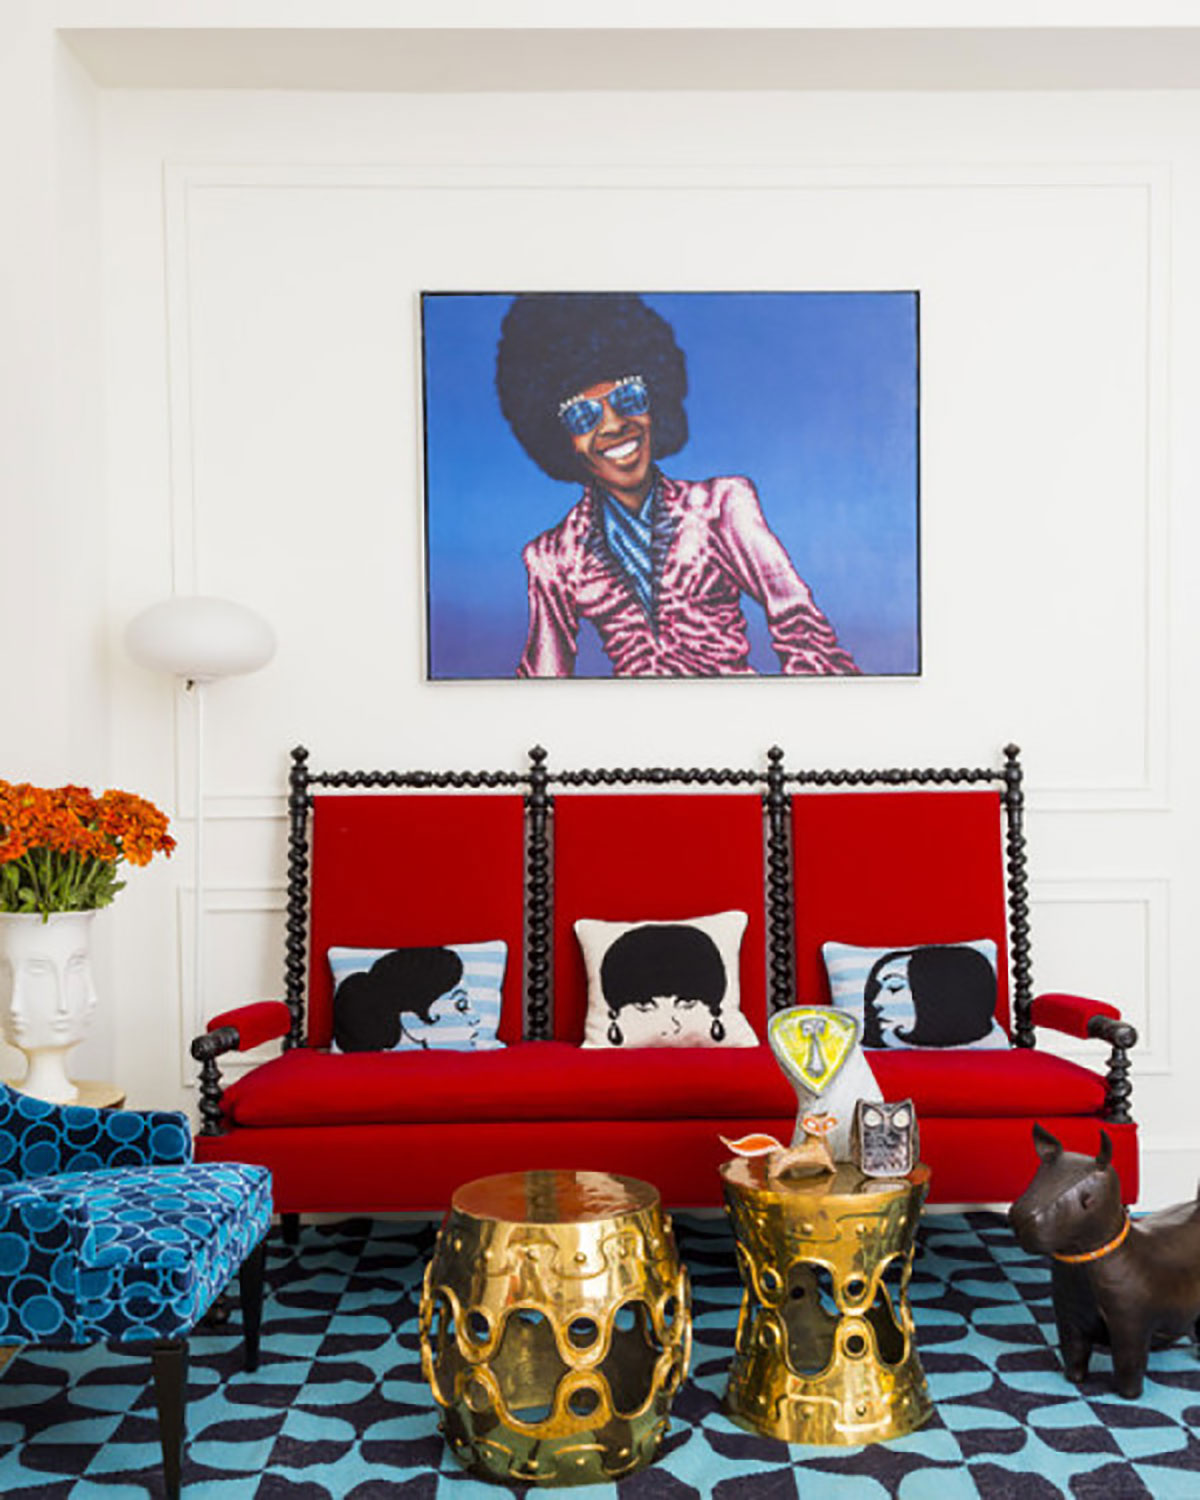 10 Chic Ways to Decorate in Red, White and Blue 4th of July Design living room